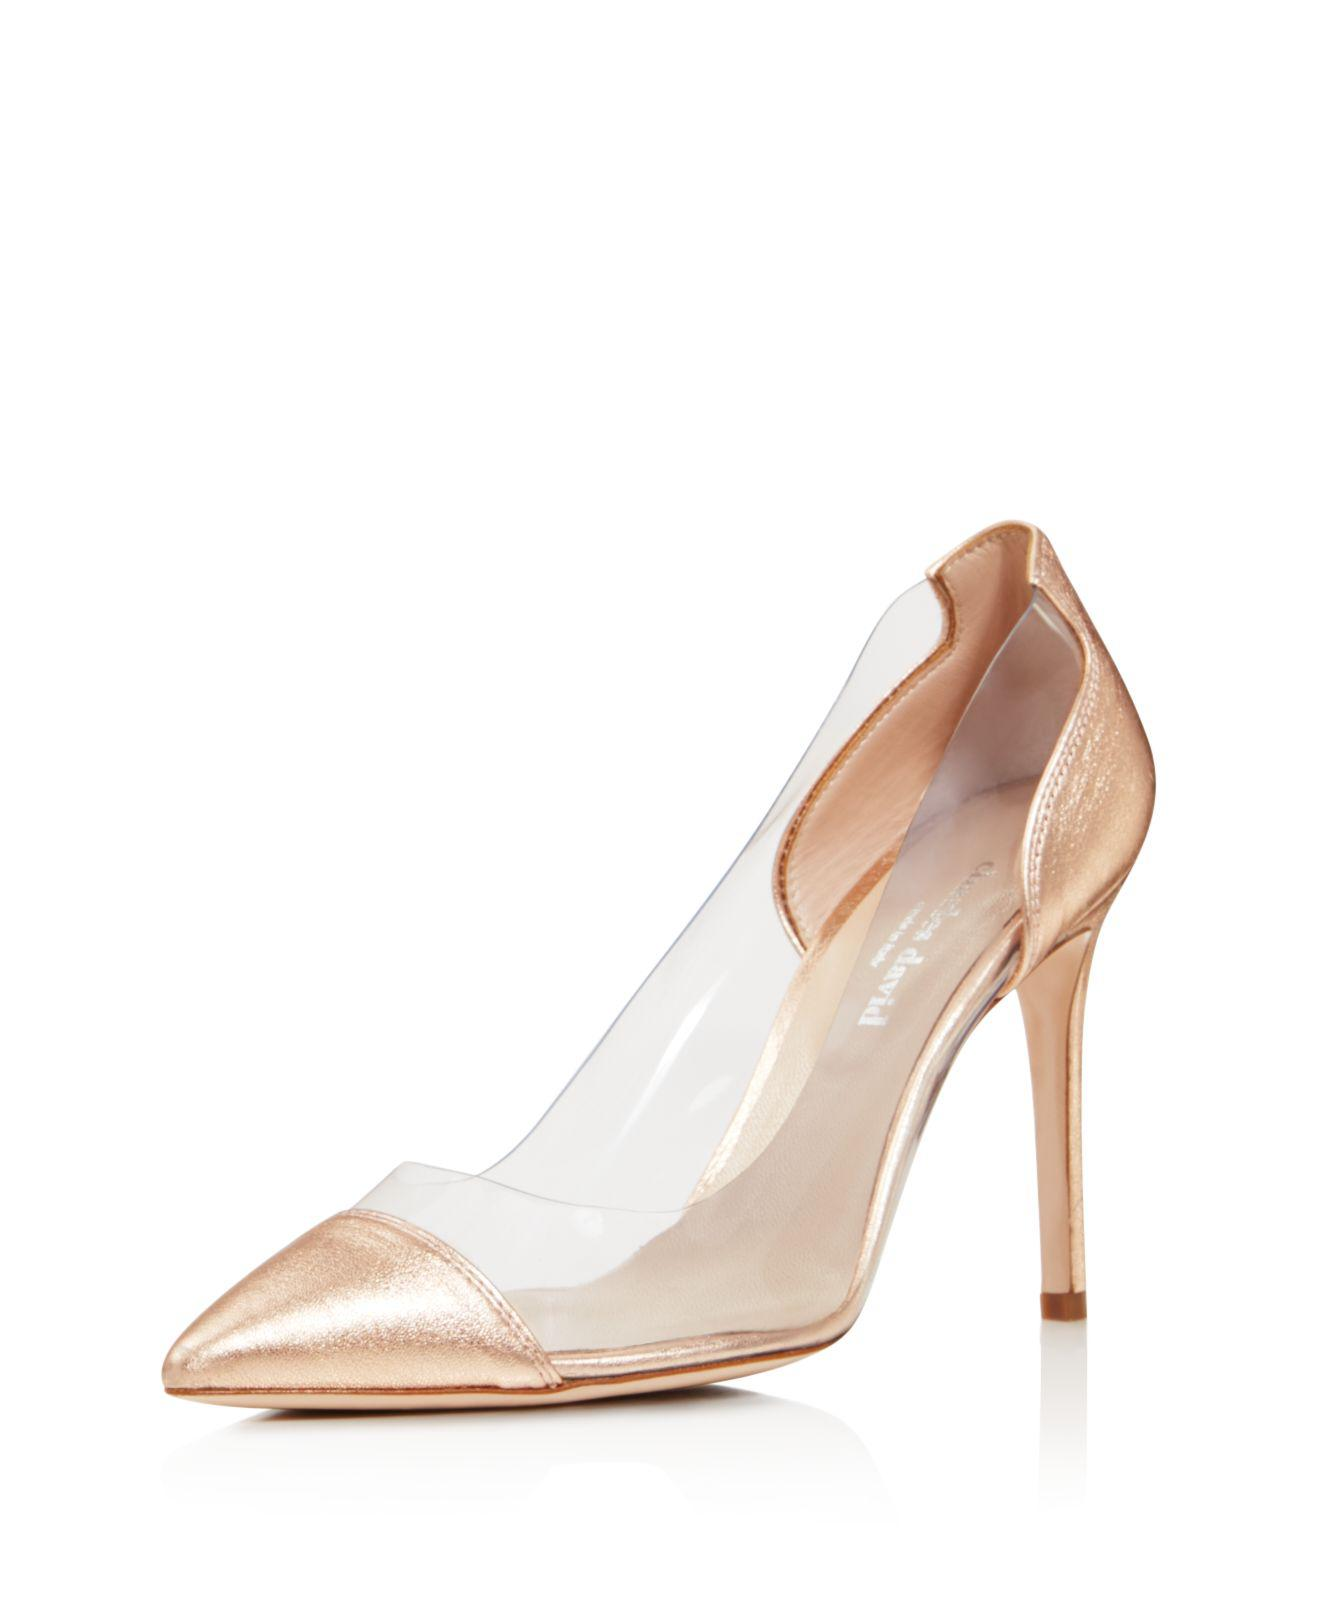 Charles David Women's Genuine Transparent Pump UlxKiPp